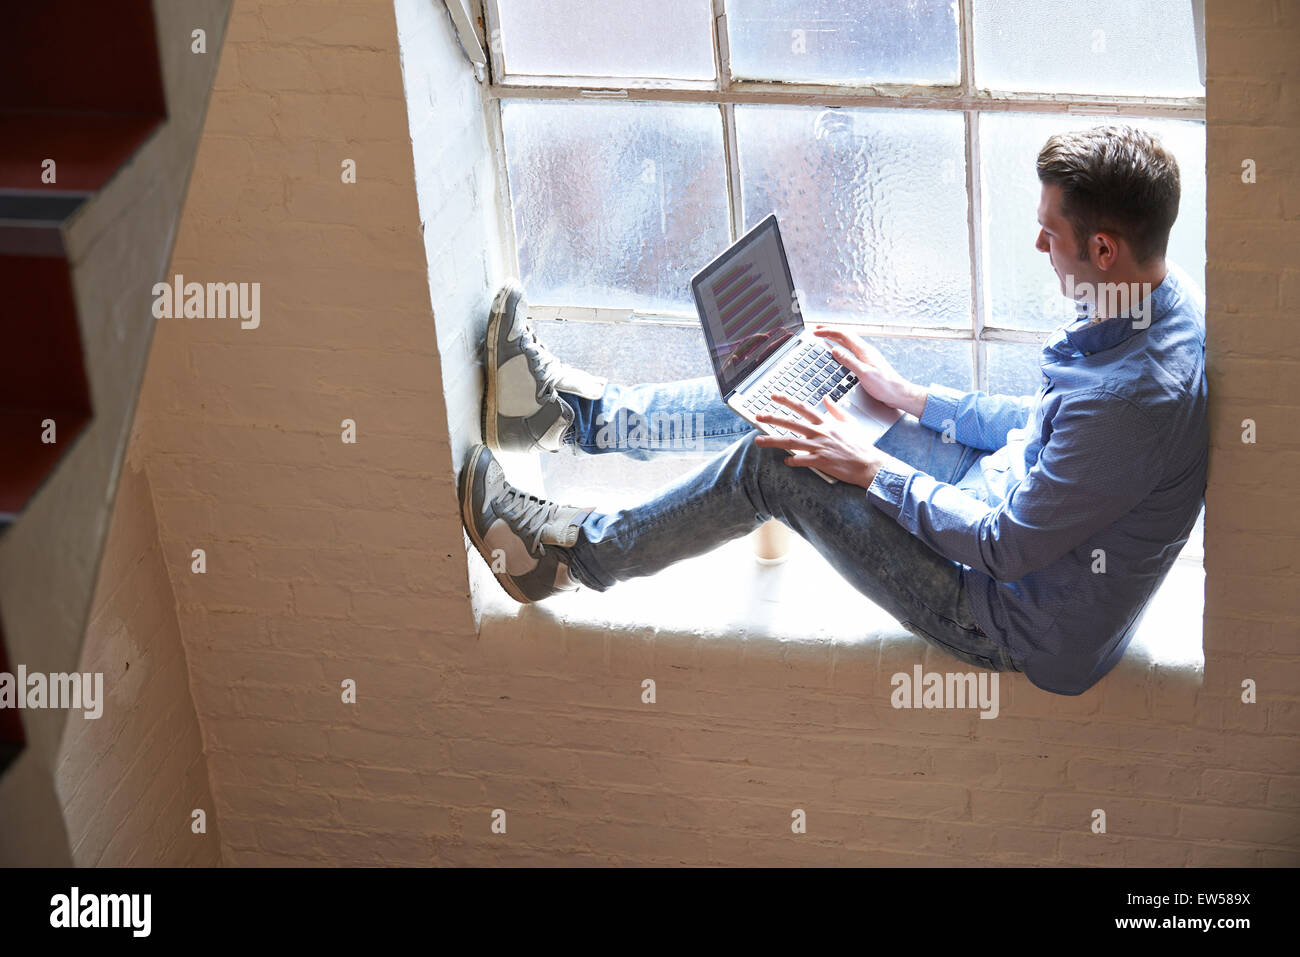 Casually Dressed Businessman Working On Stairs In Office - Stock Image